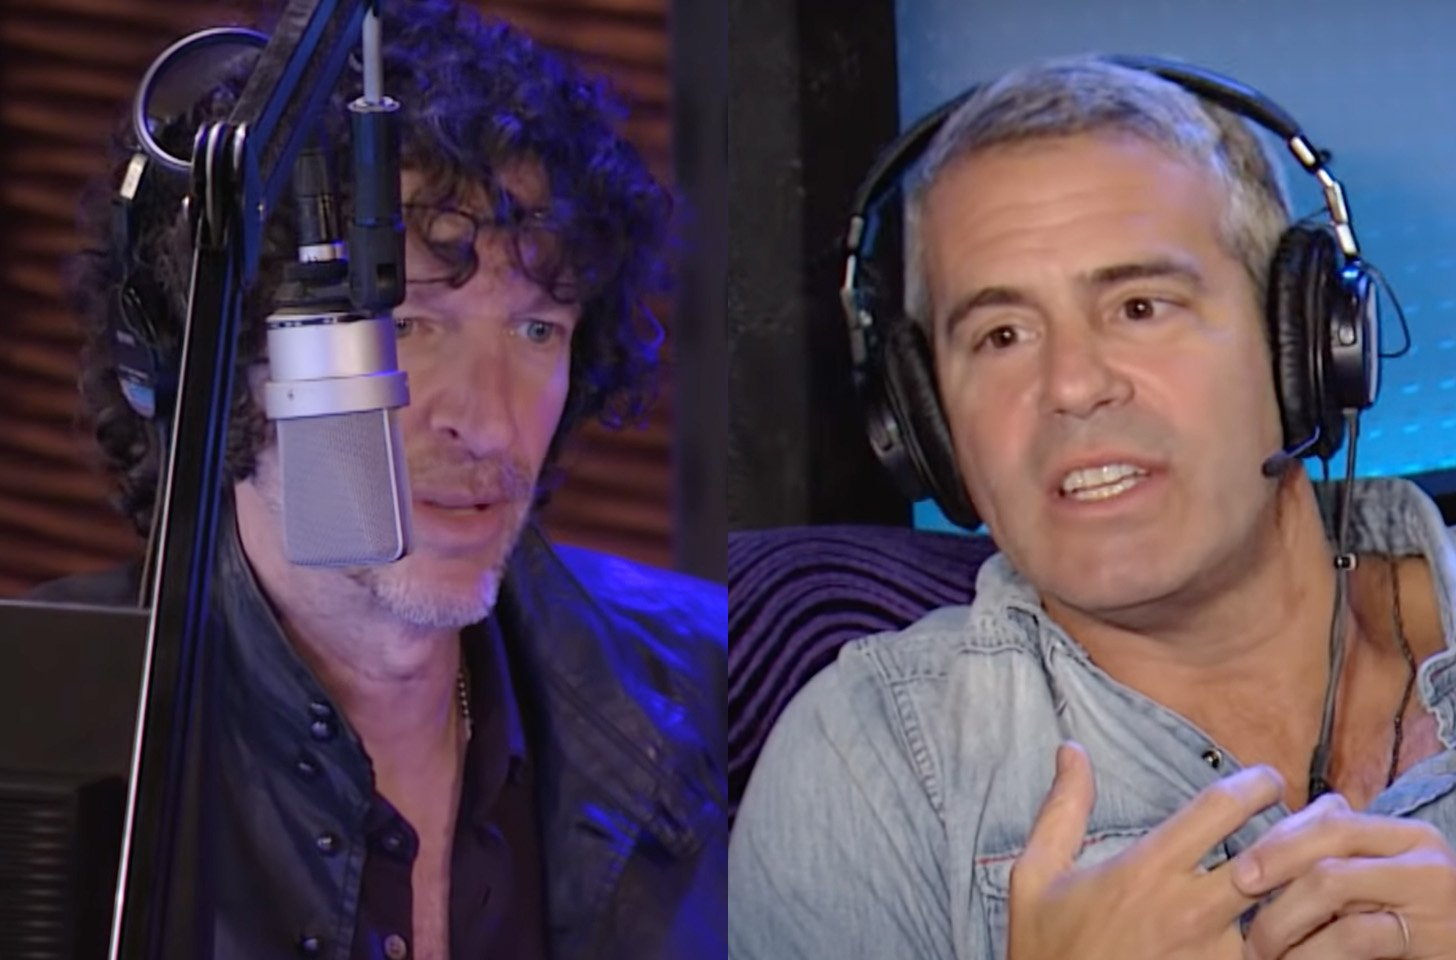 andy-cohen-gunning-to-replace-howard-stern-on-siriusxm?